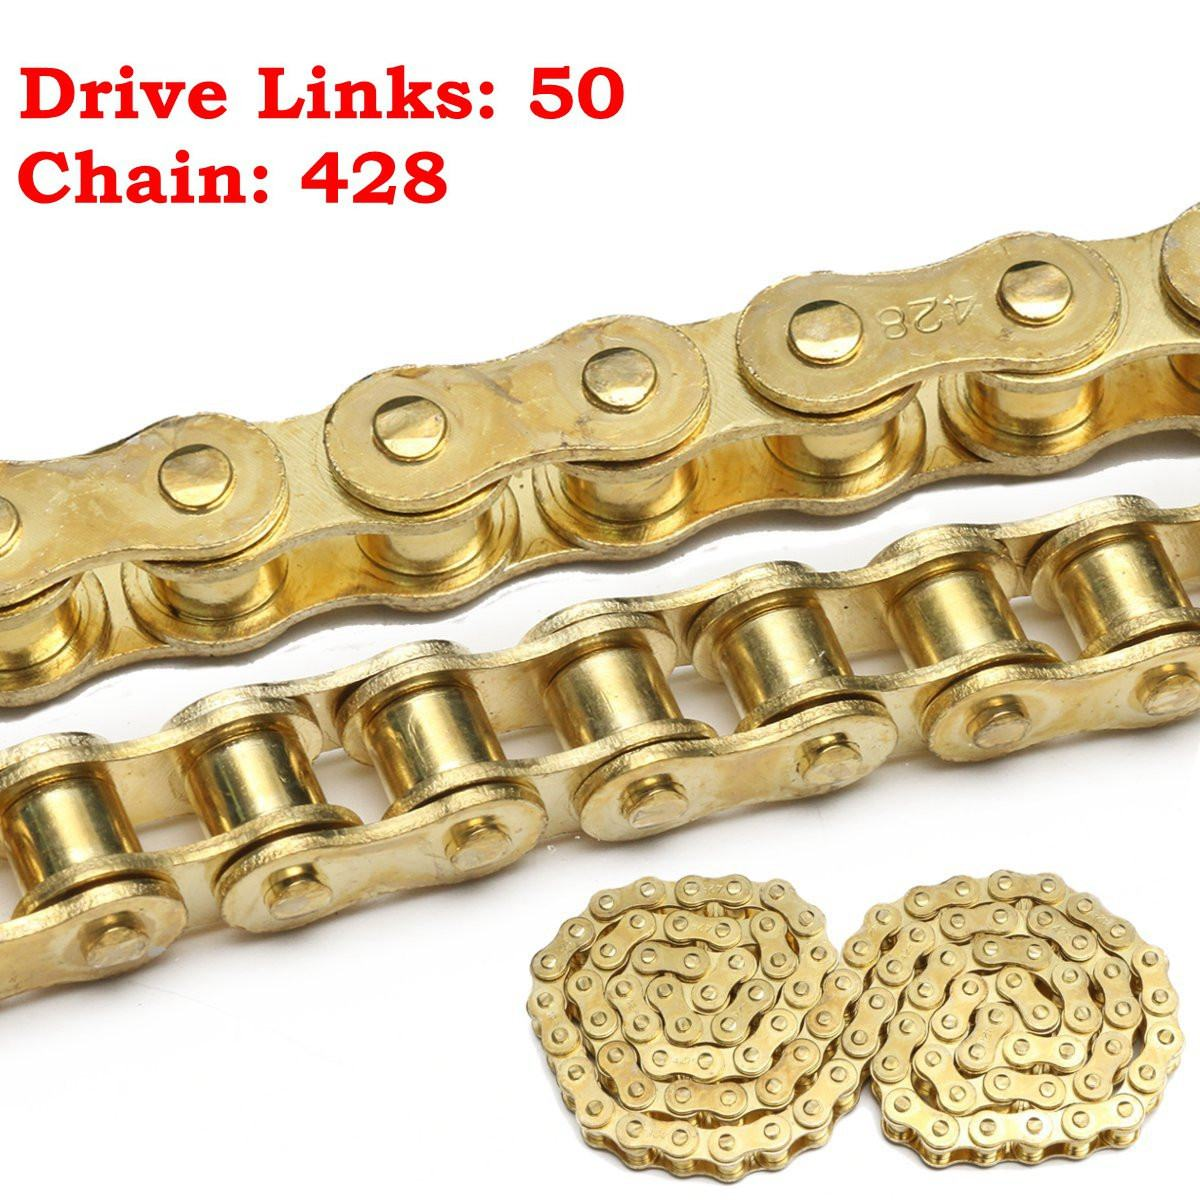 Back To Search Resultsautomobiles & Motorcycles Apprehensive Gold 50 Link 428 Drive Chain For 50cc 110cc 125cc 140cc Pit Dirt Bike Pitbike Quad Atv High Standard In Quality And Hygiene